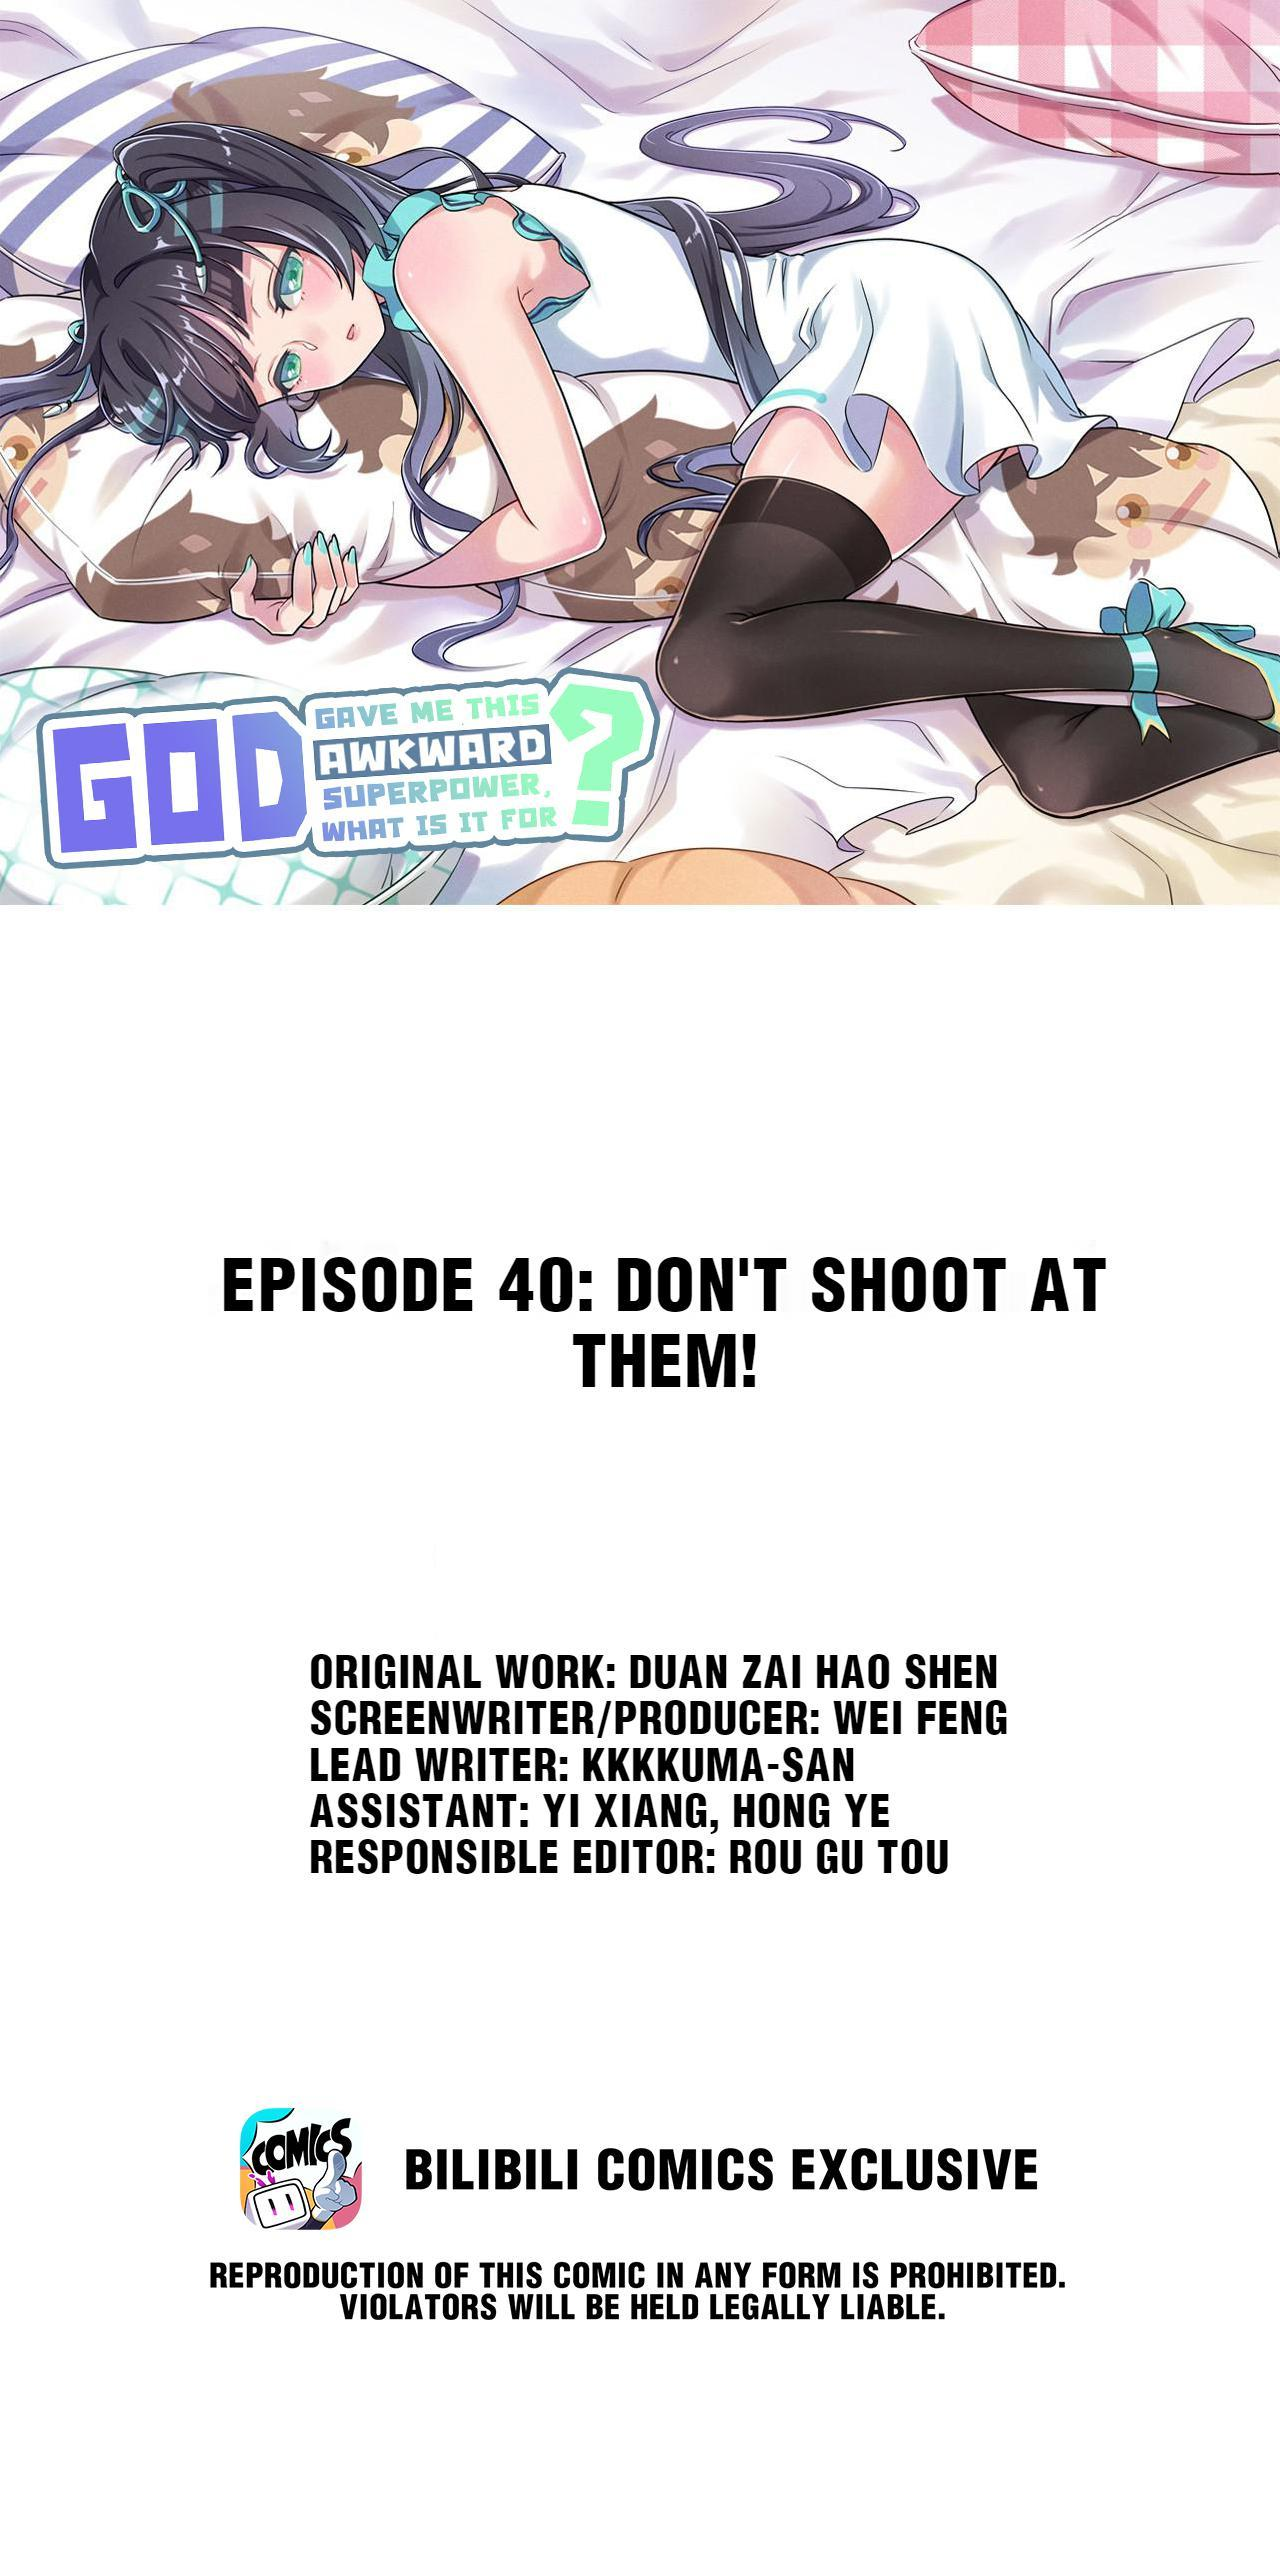 God Gave Me This Awkward Superpower, What Is It For? Chapter 40: Don't Shoot At Them page 1 - Mangakakalots.com